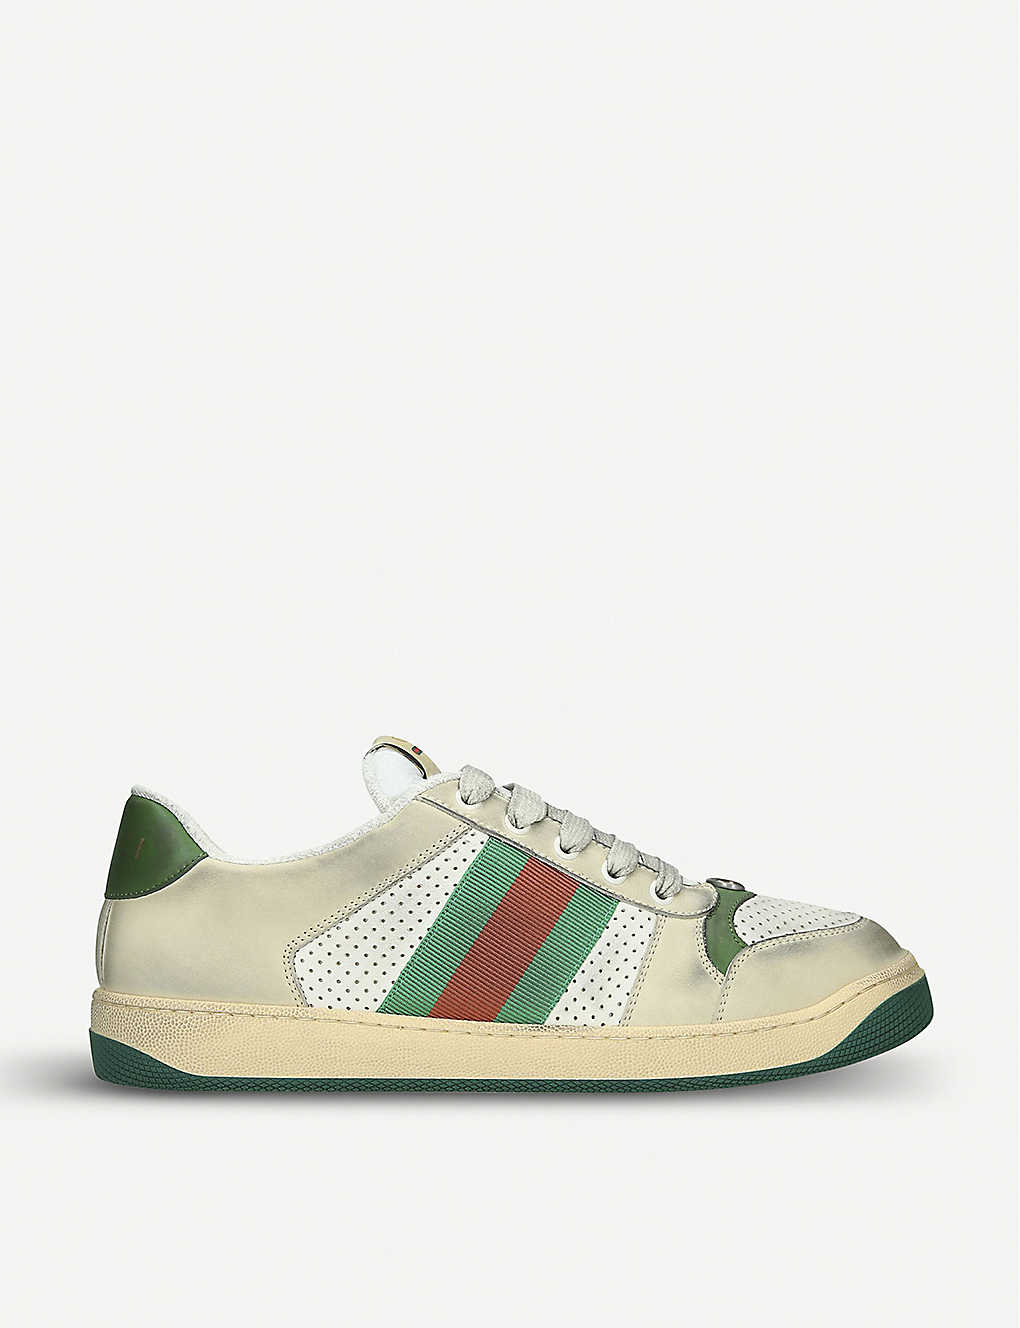 Gucci Shoes Virtus distressed leather trainers